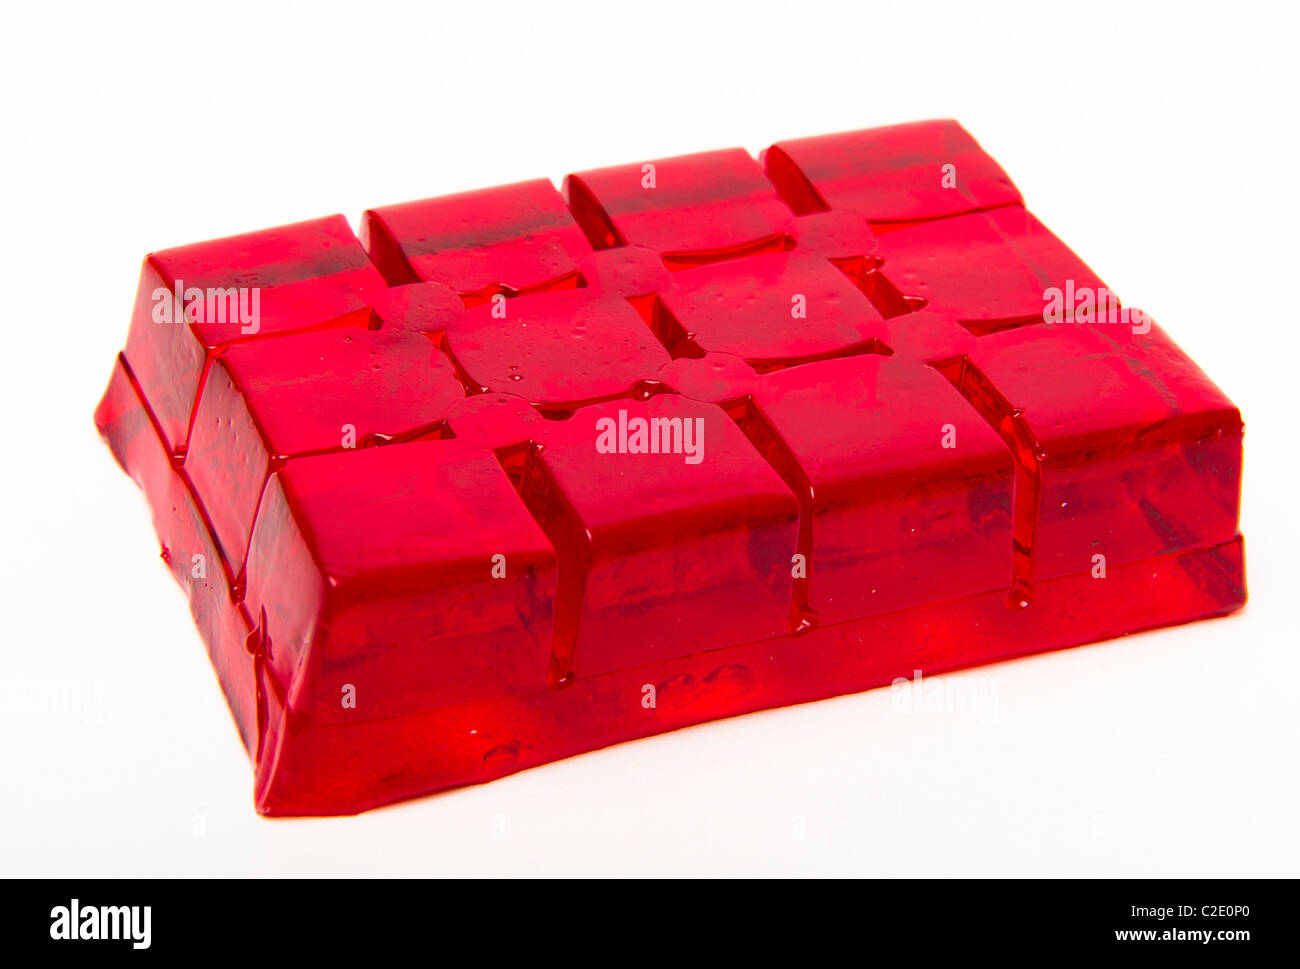 red raspberry jelly cubes - Stock Image